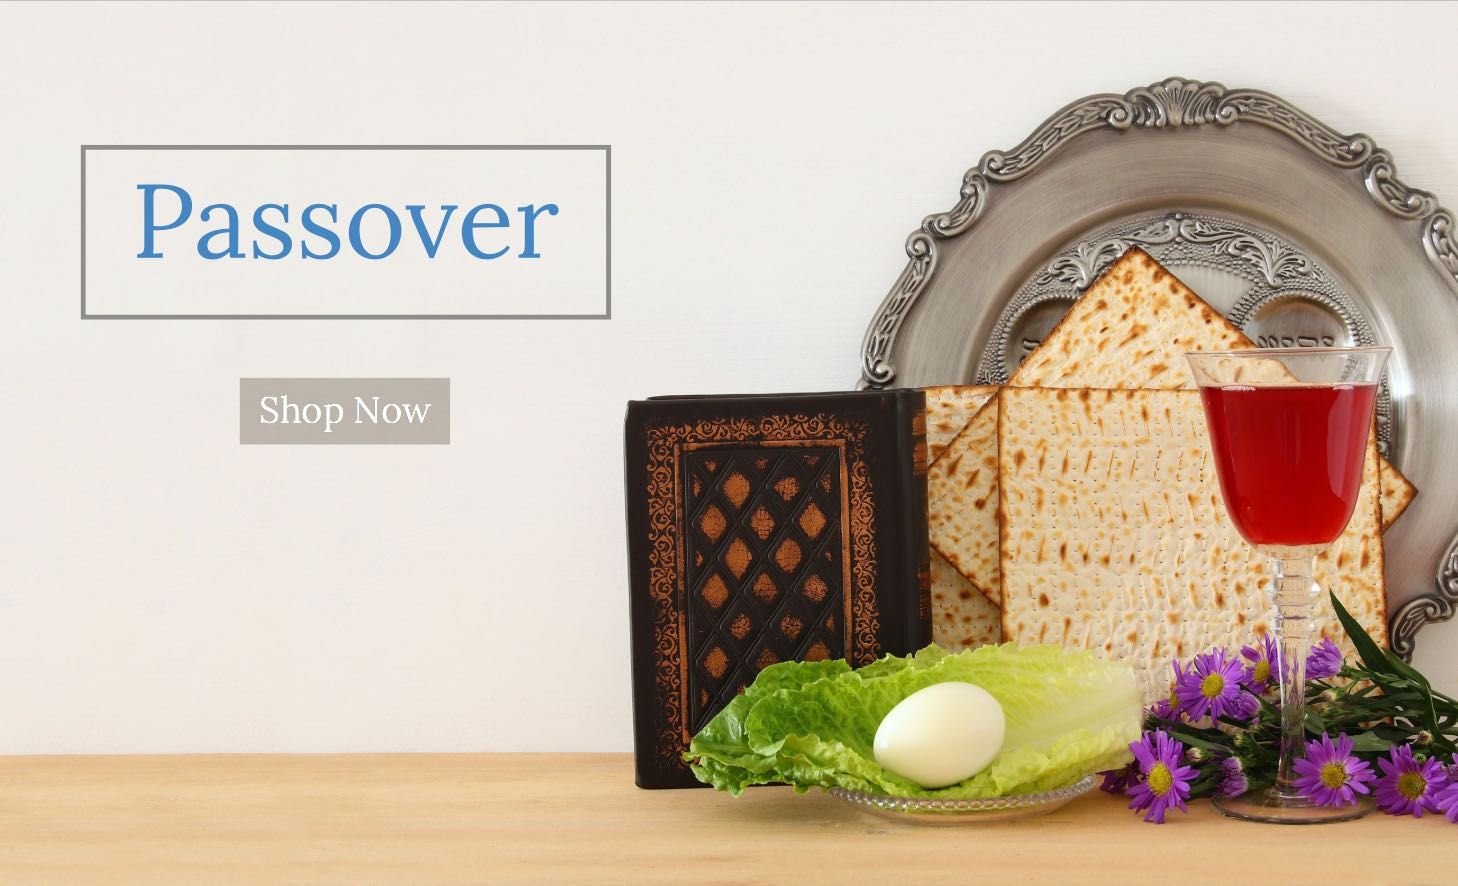 Passover Shop Now